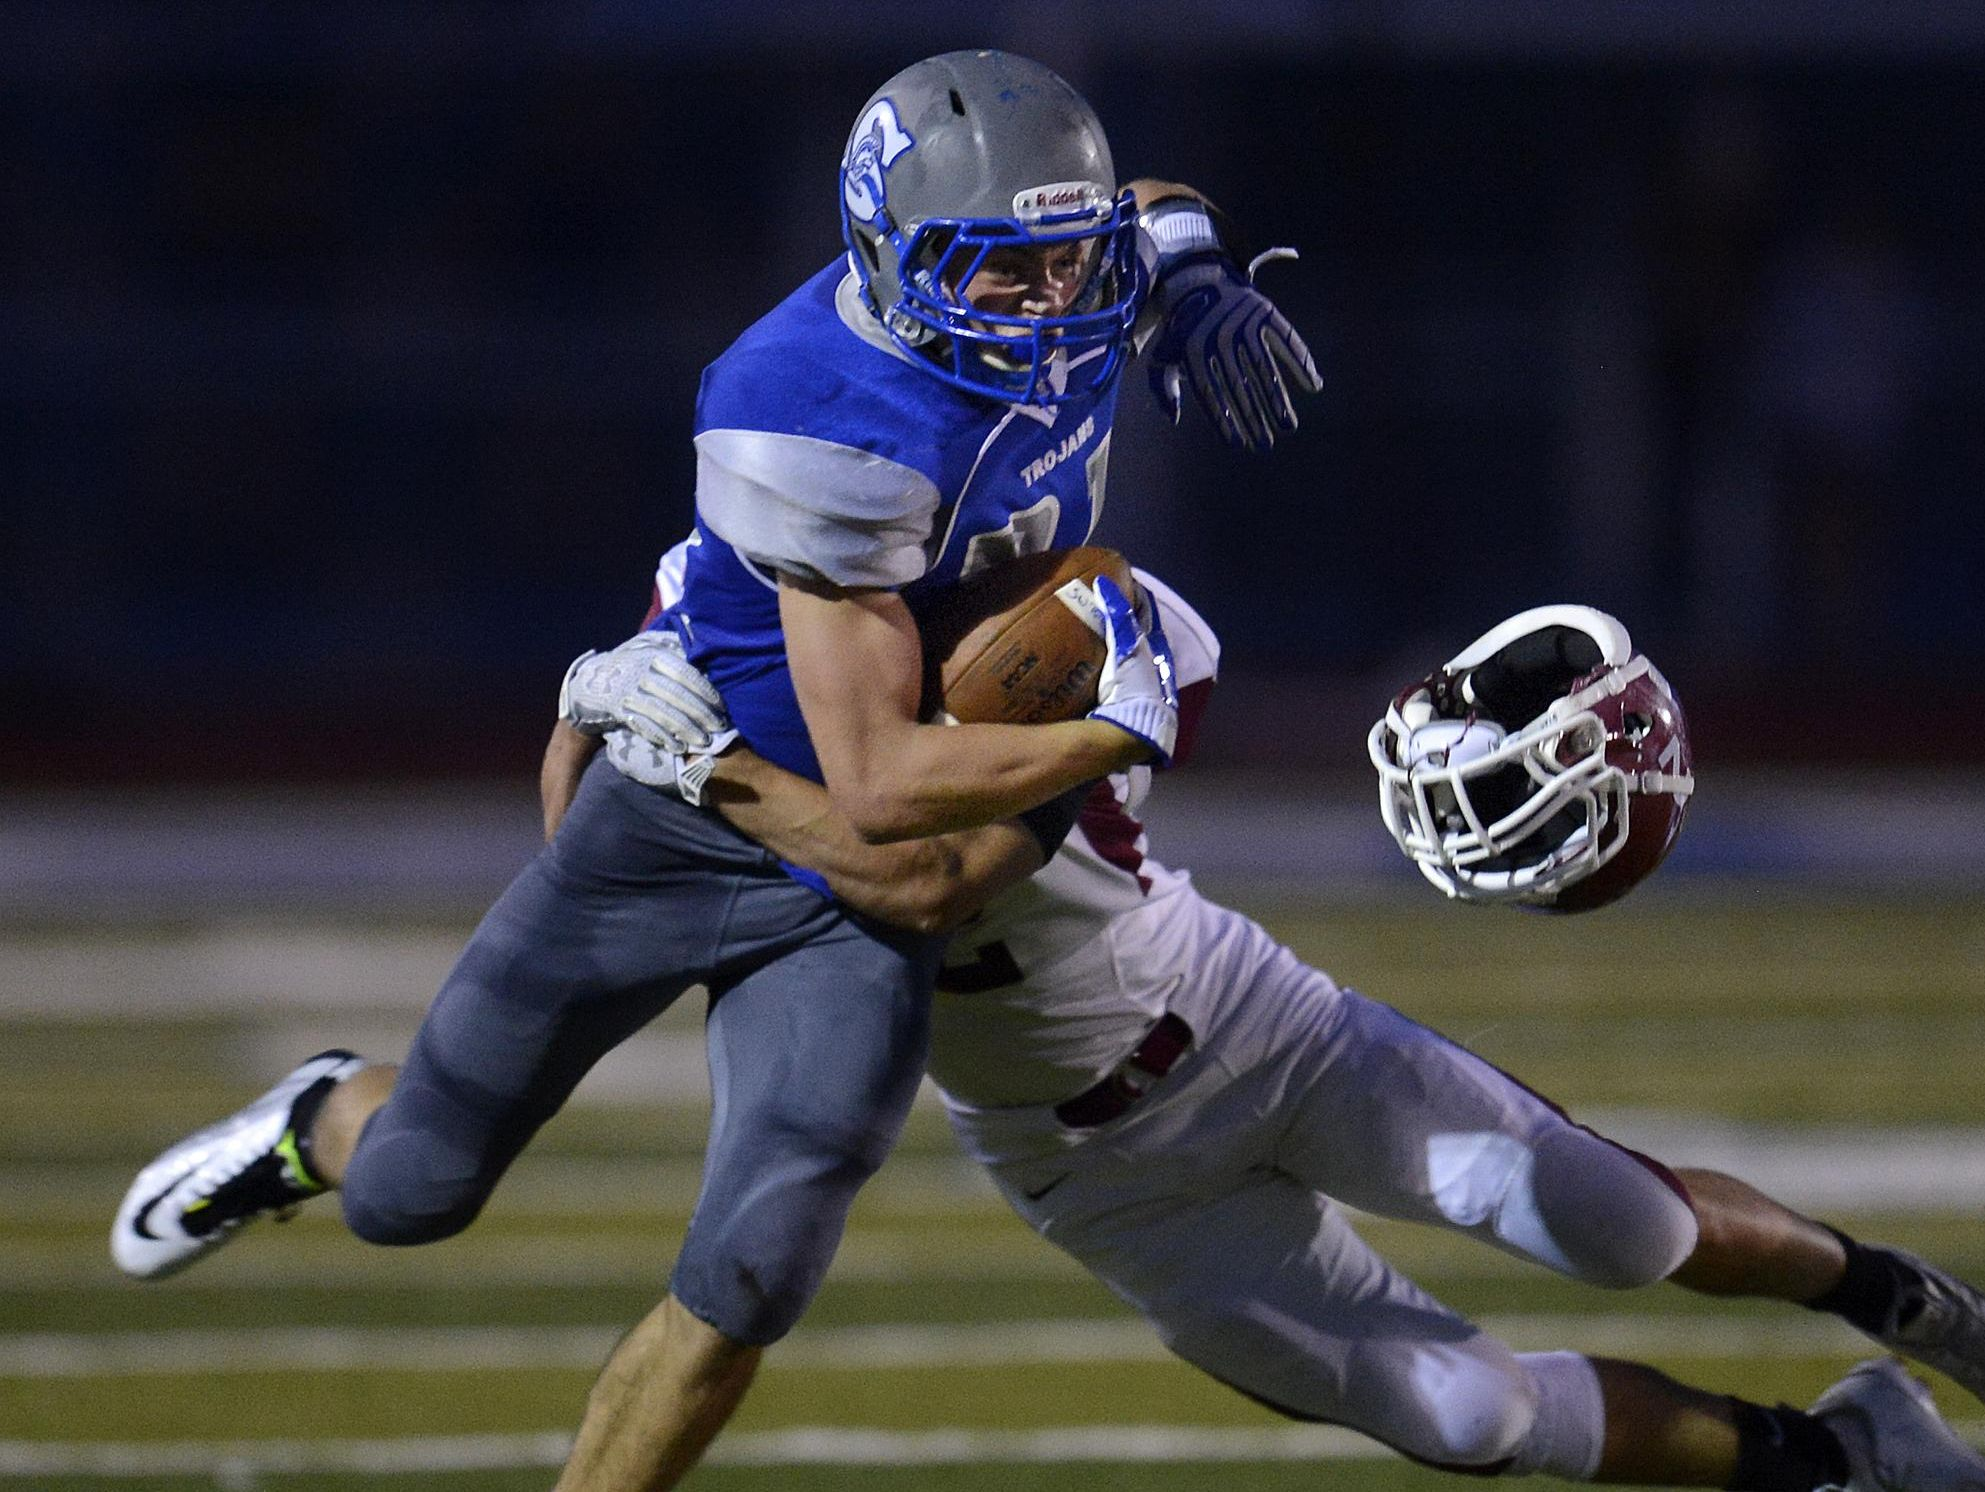 Green Bay Southwest senior Ryan McClure earned first-team all-FRCC honors as a receiver.